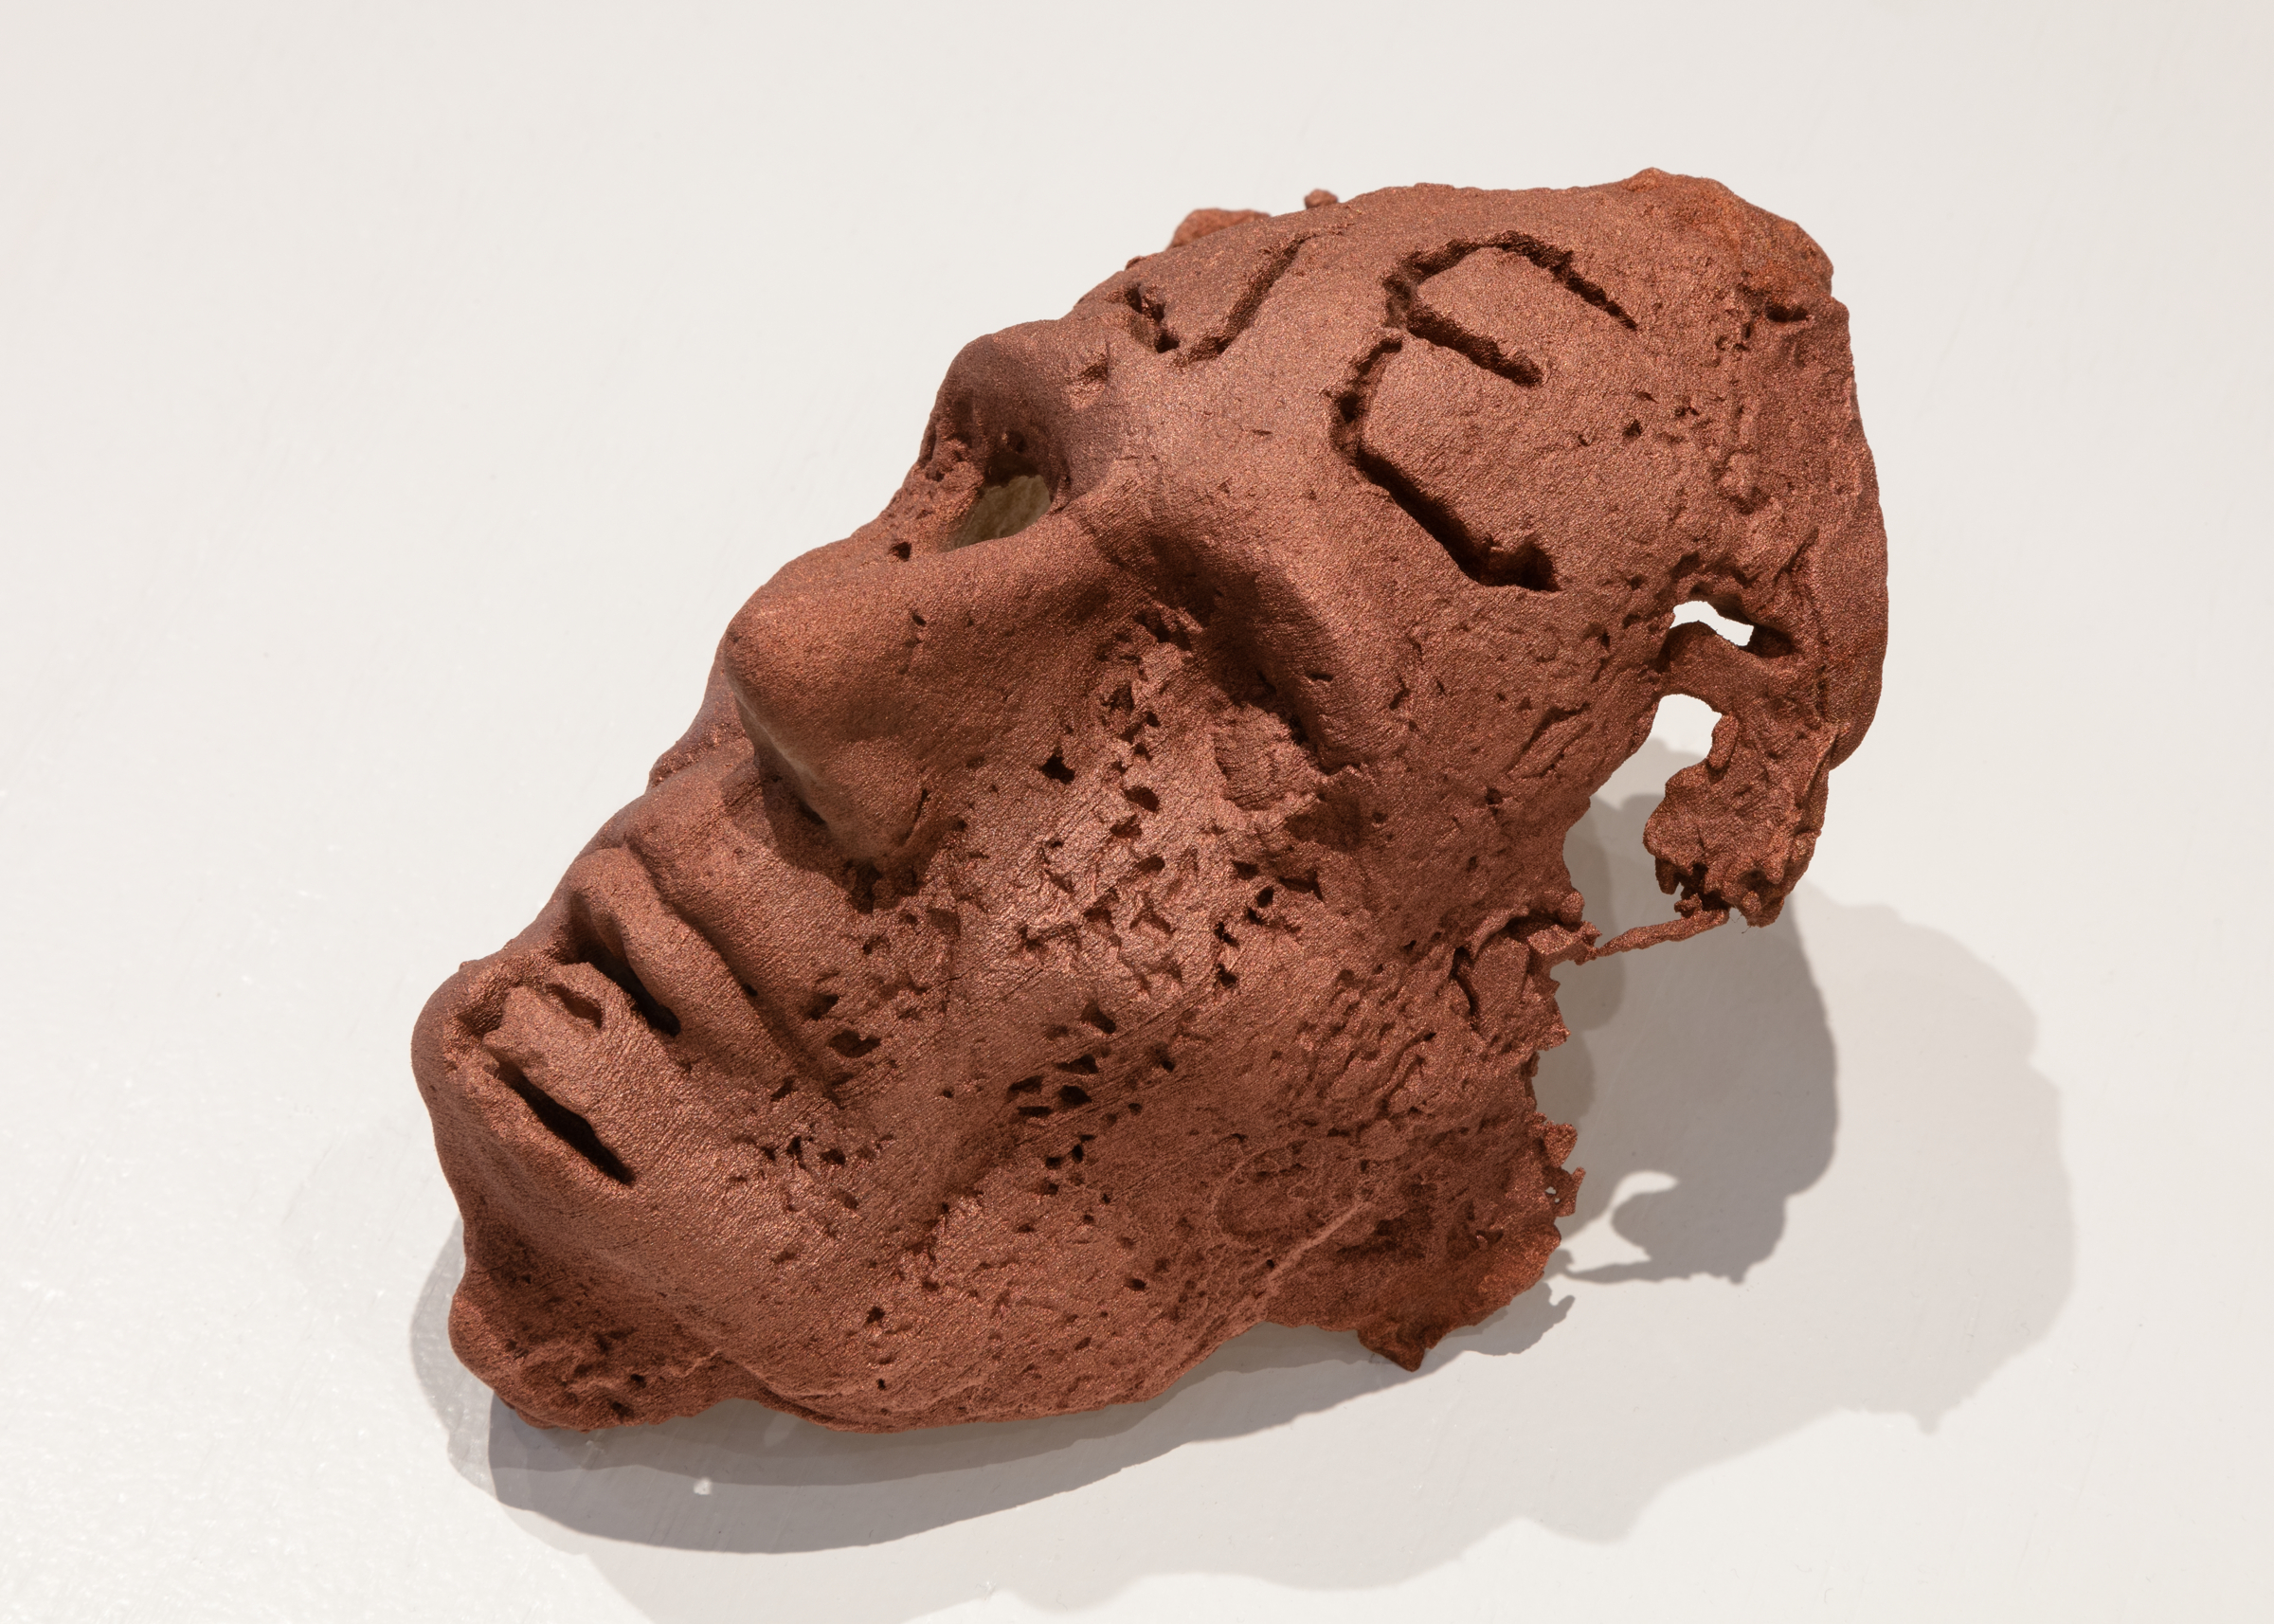 """Jory Rabinovitz,   Component of """"Death of Abel"""" Edition: Life Mask of Abraham Lincoln (Volk) , 2018, 3-D Print, 5.25 x 9 x 6.5 in."""